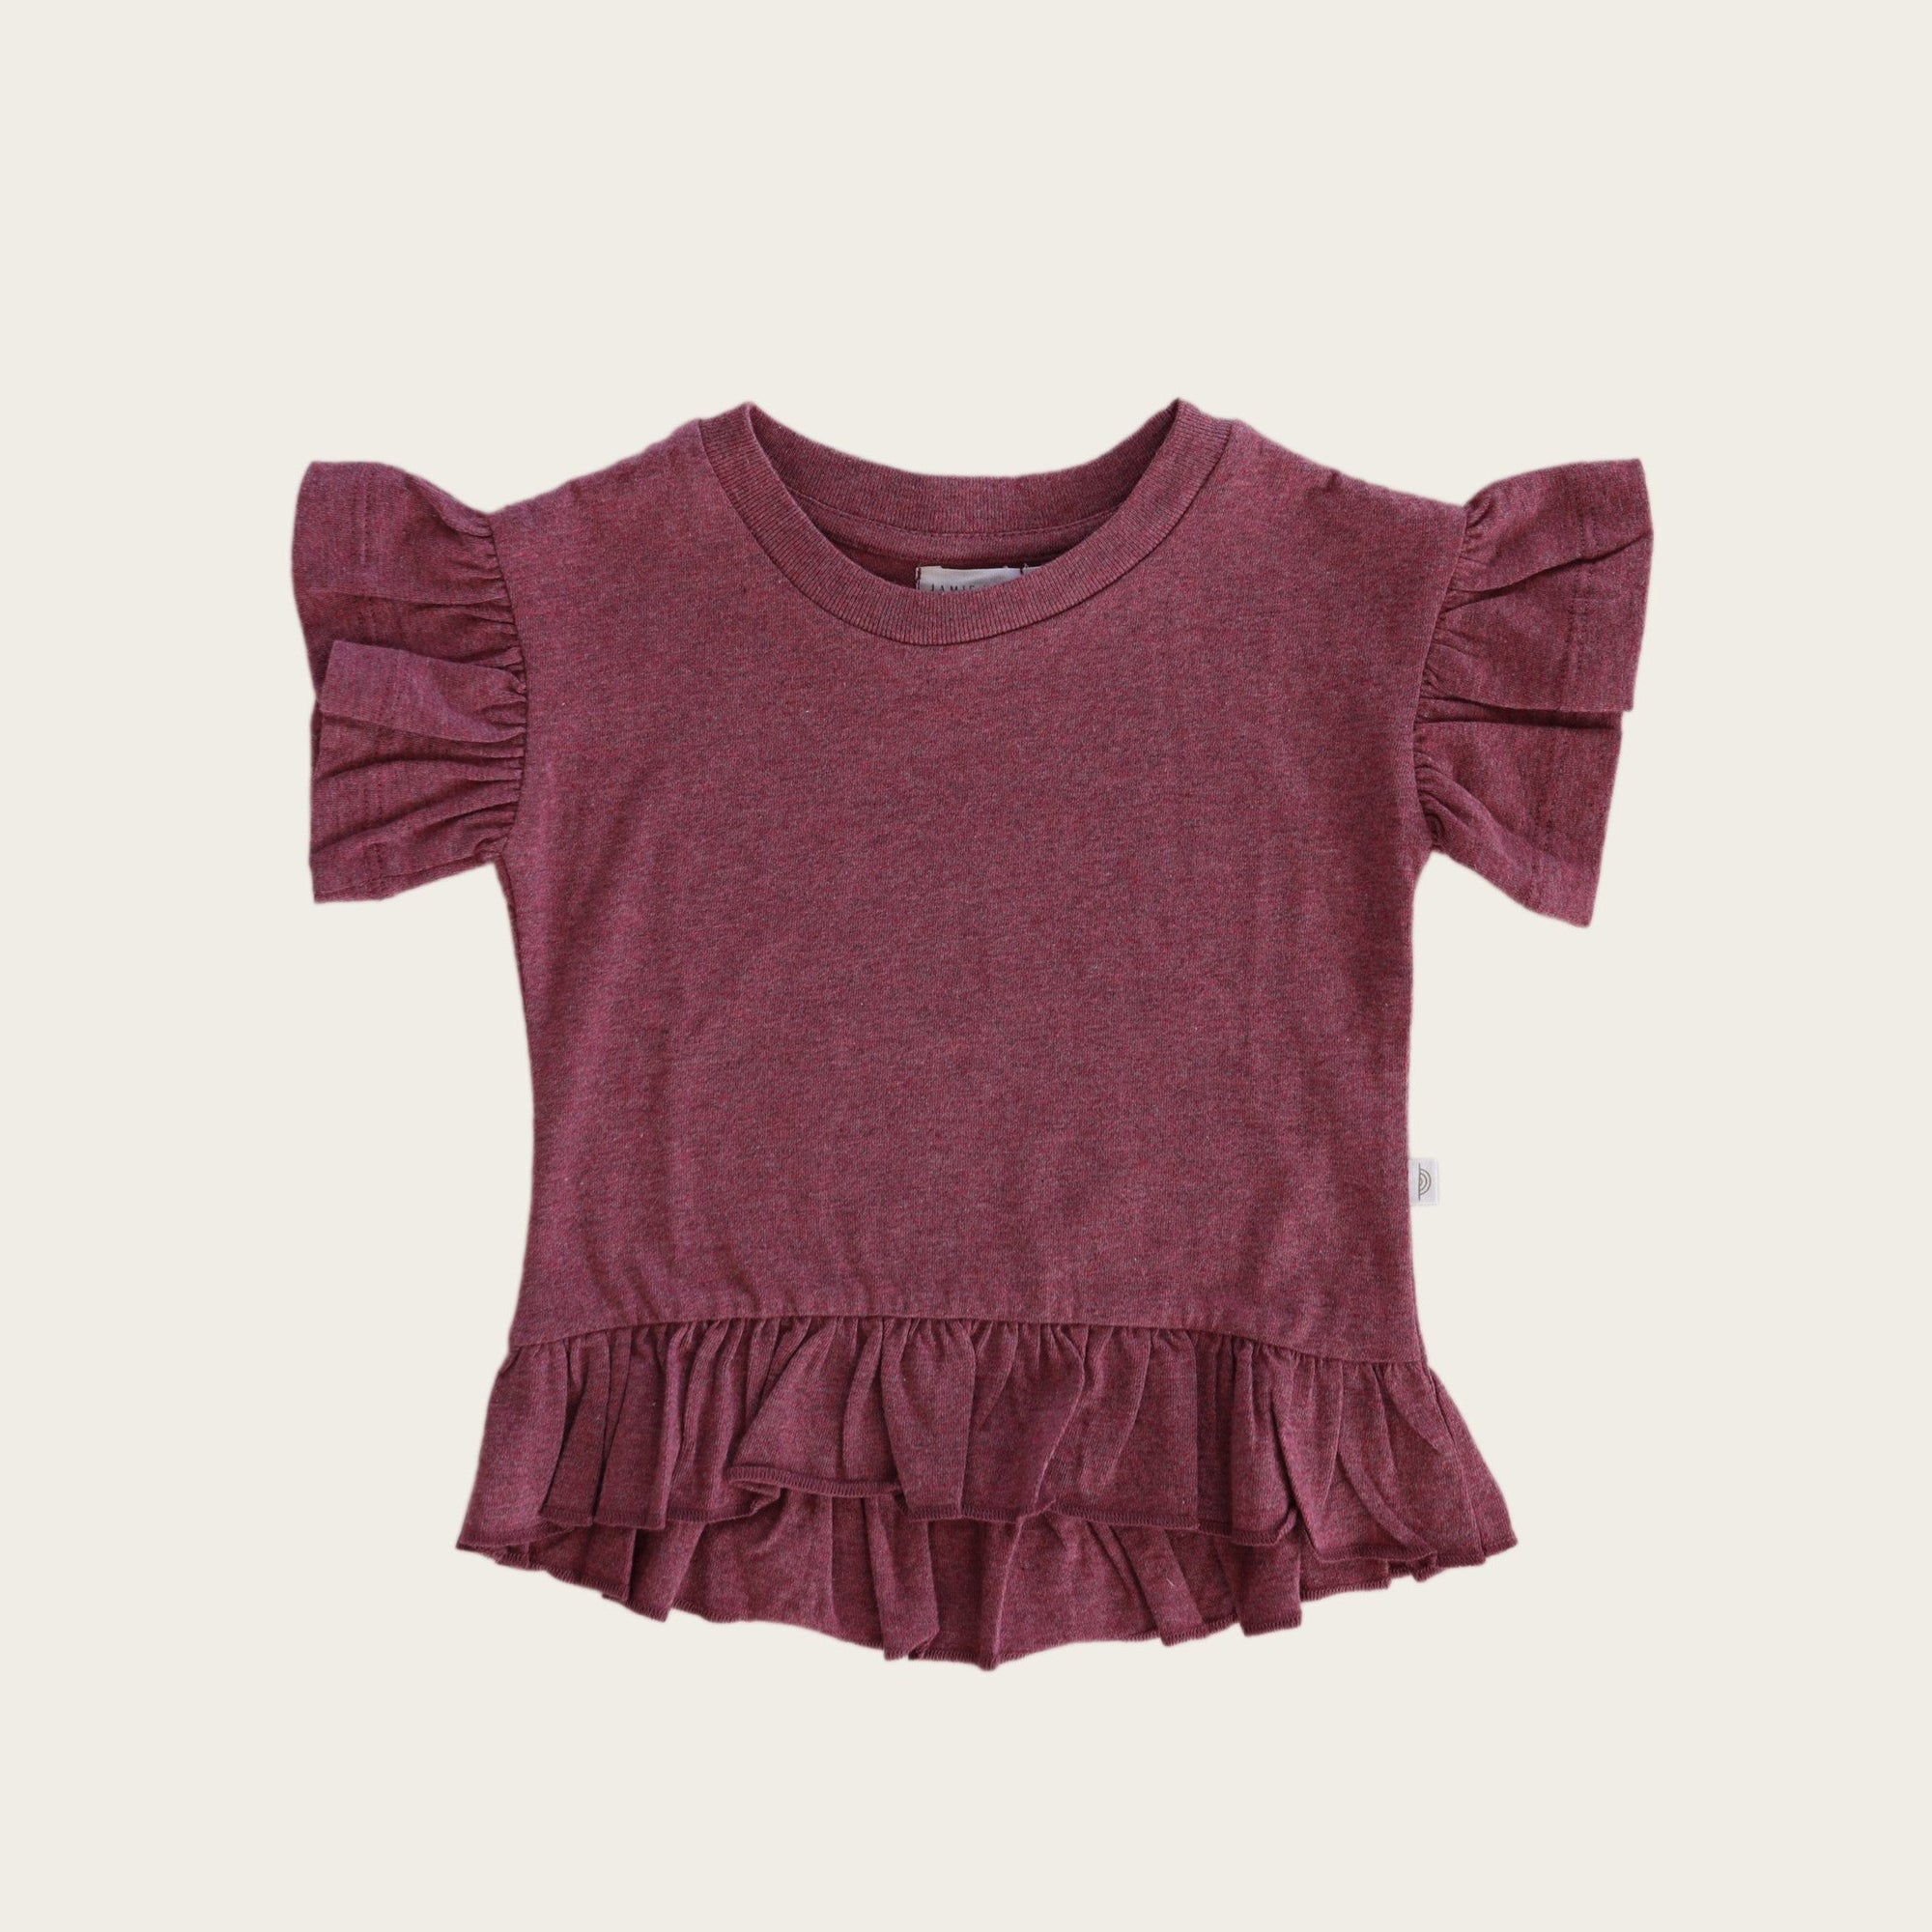 Eden Top (Pink Raspberry)